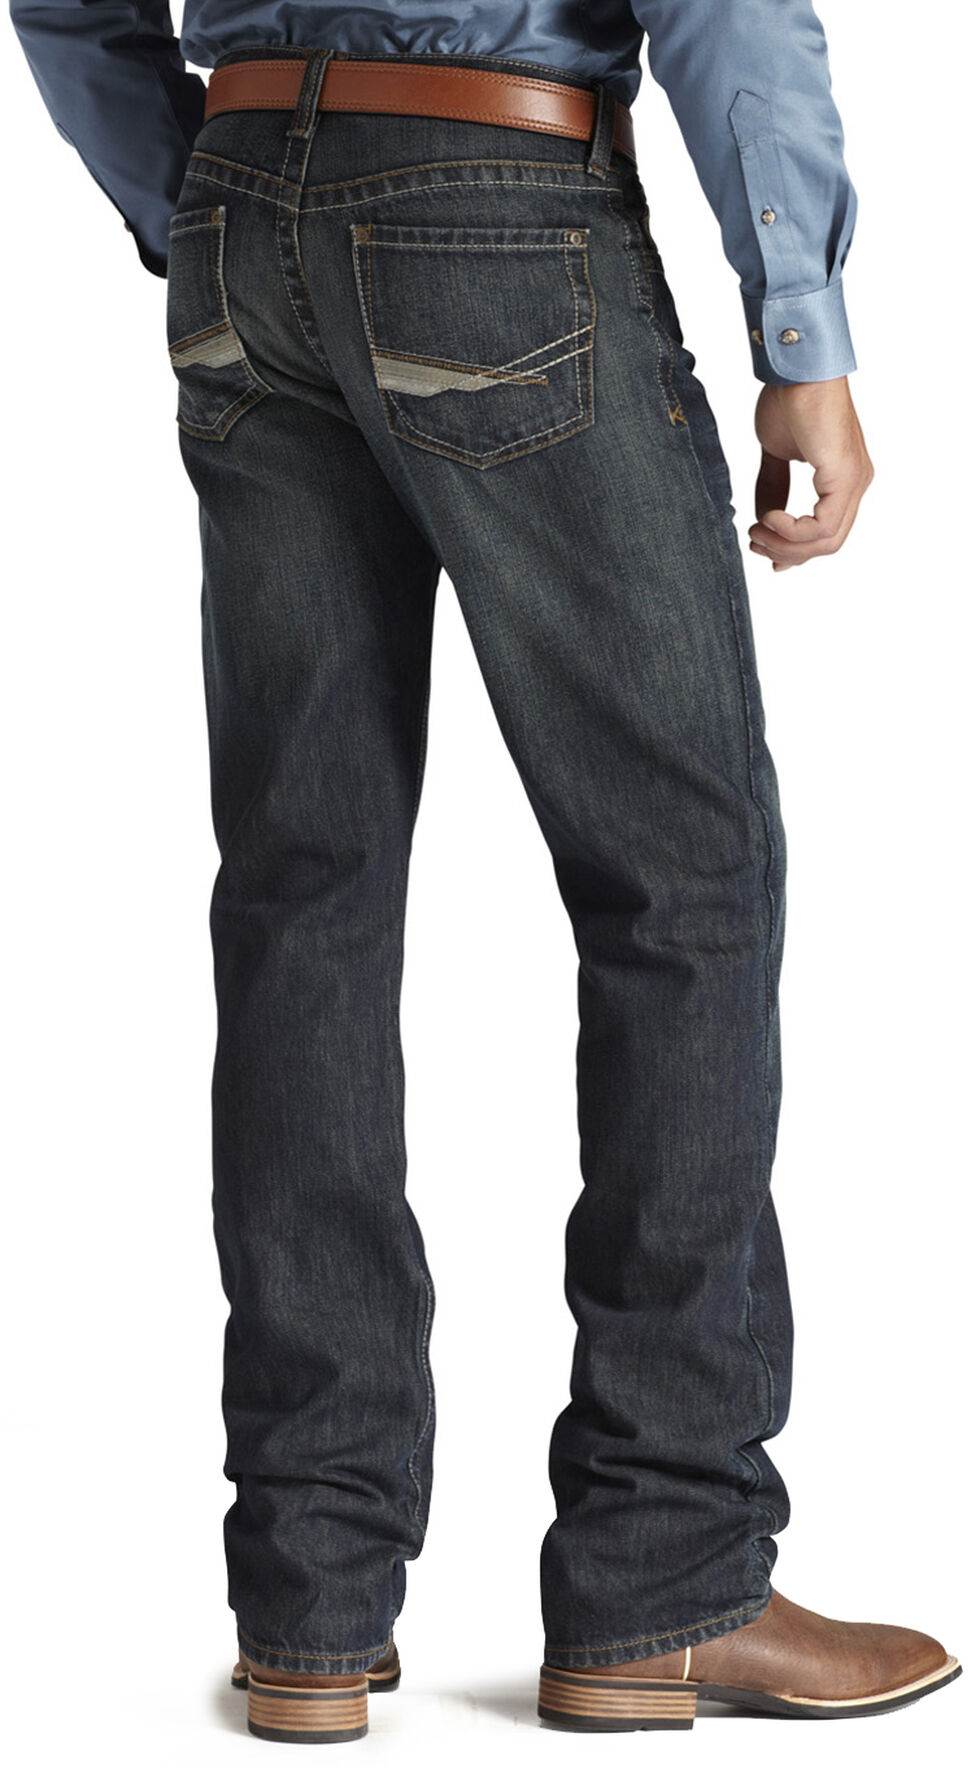 Ariat Denim Jeans   M2 Dusty Road Relaxed Fit by Ariat